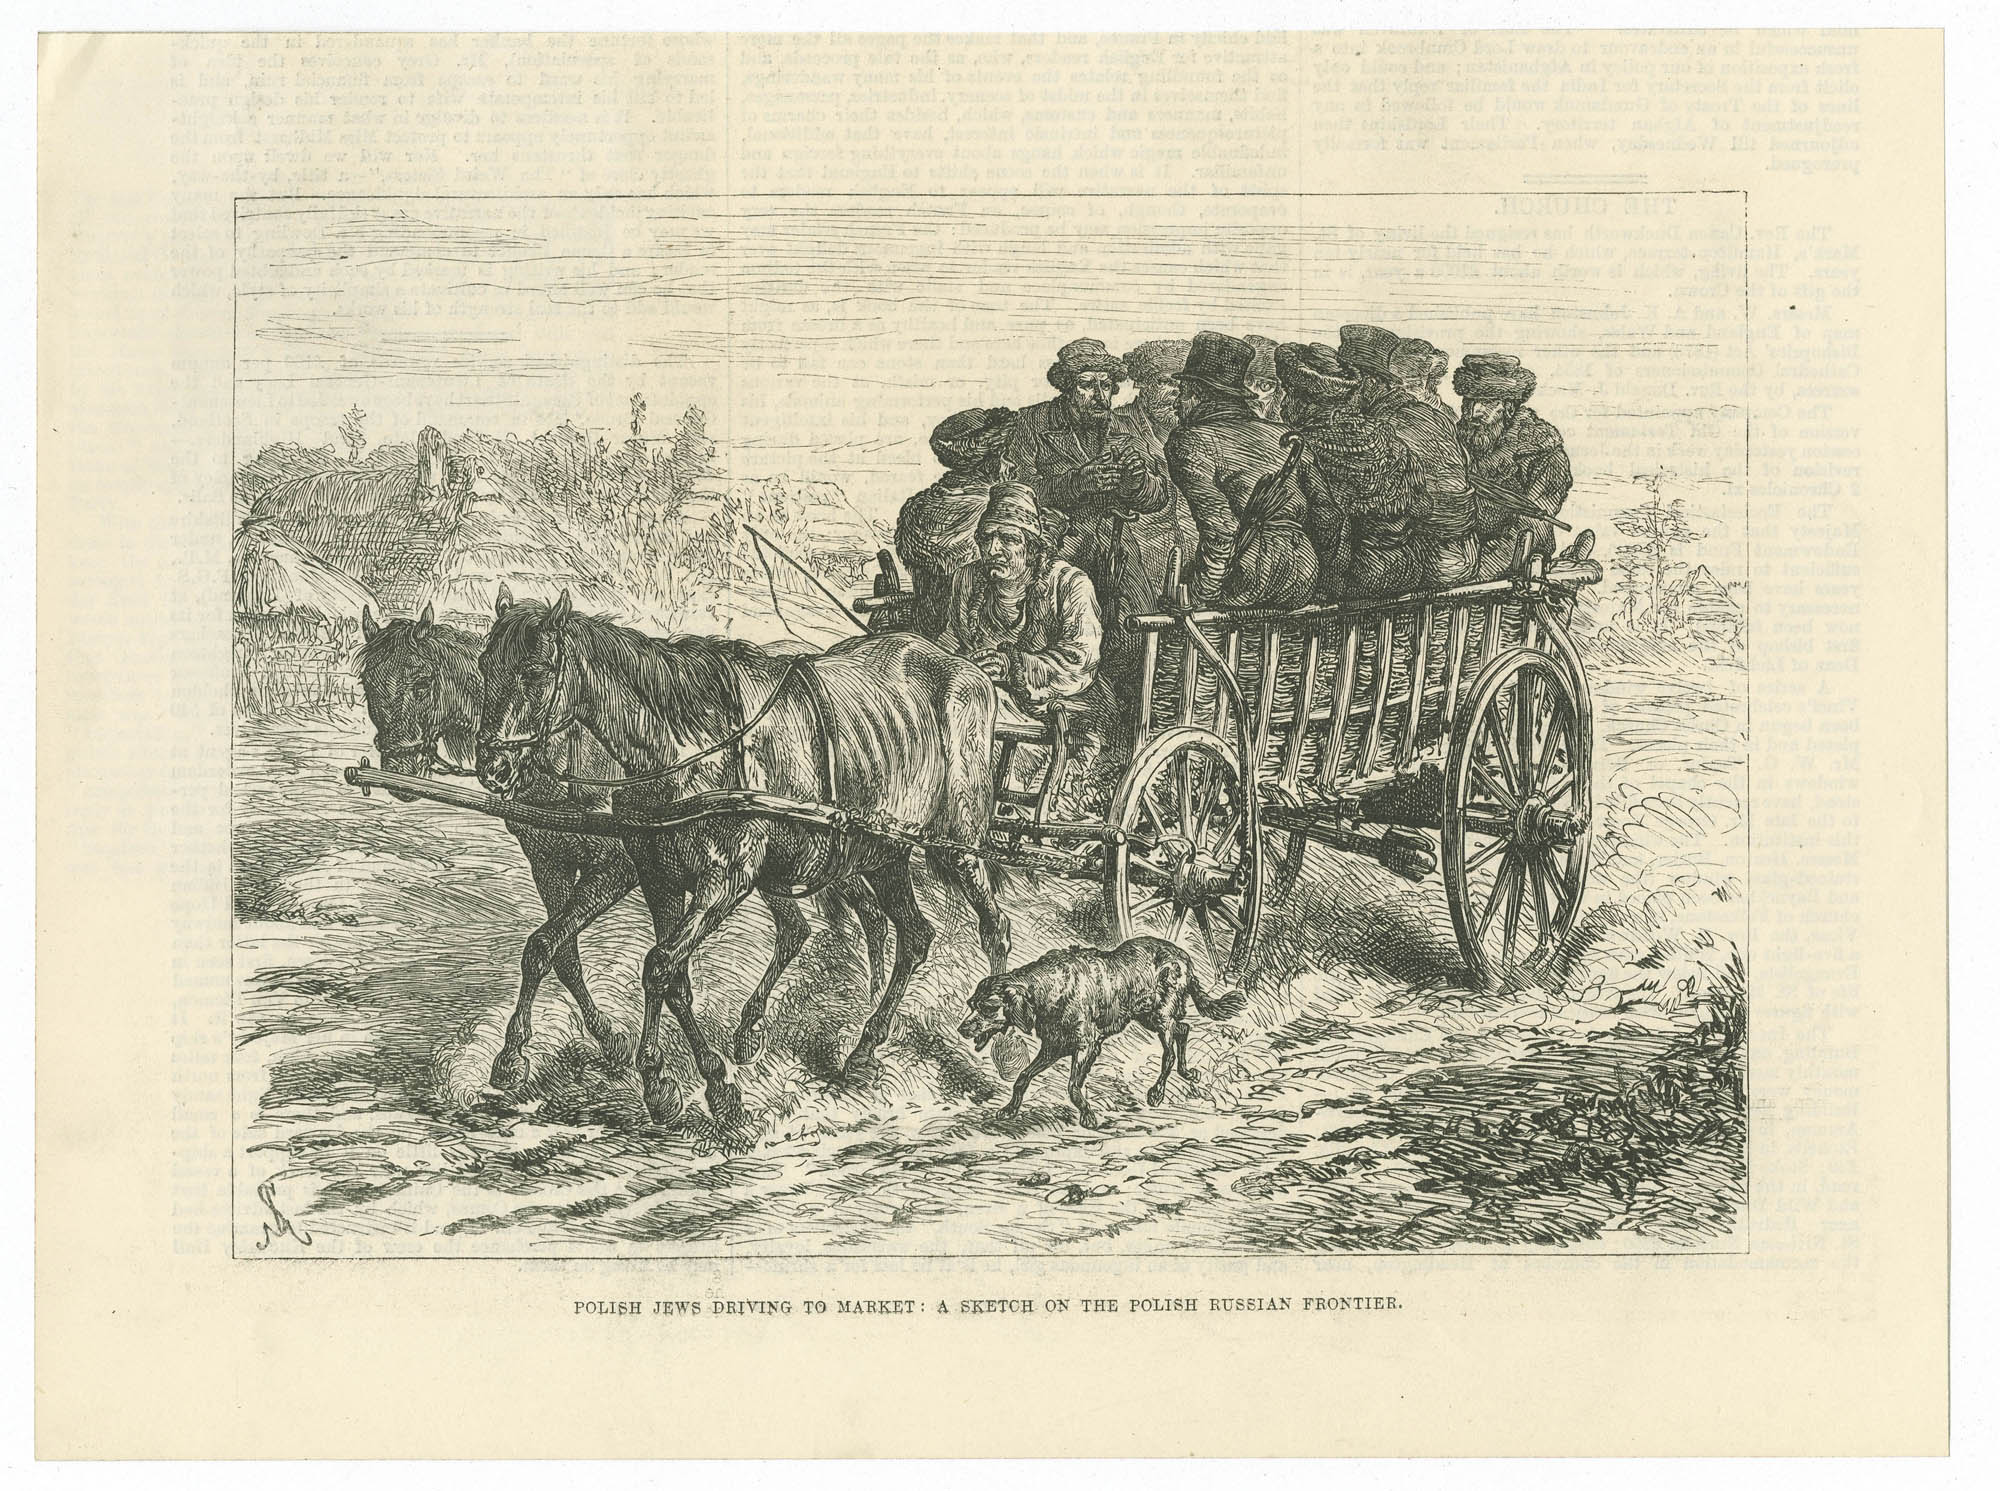 Polish Jews driving to market : a sketch on the Polish Russian frontier